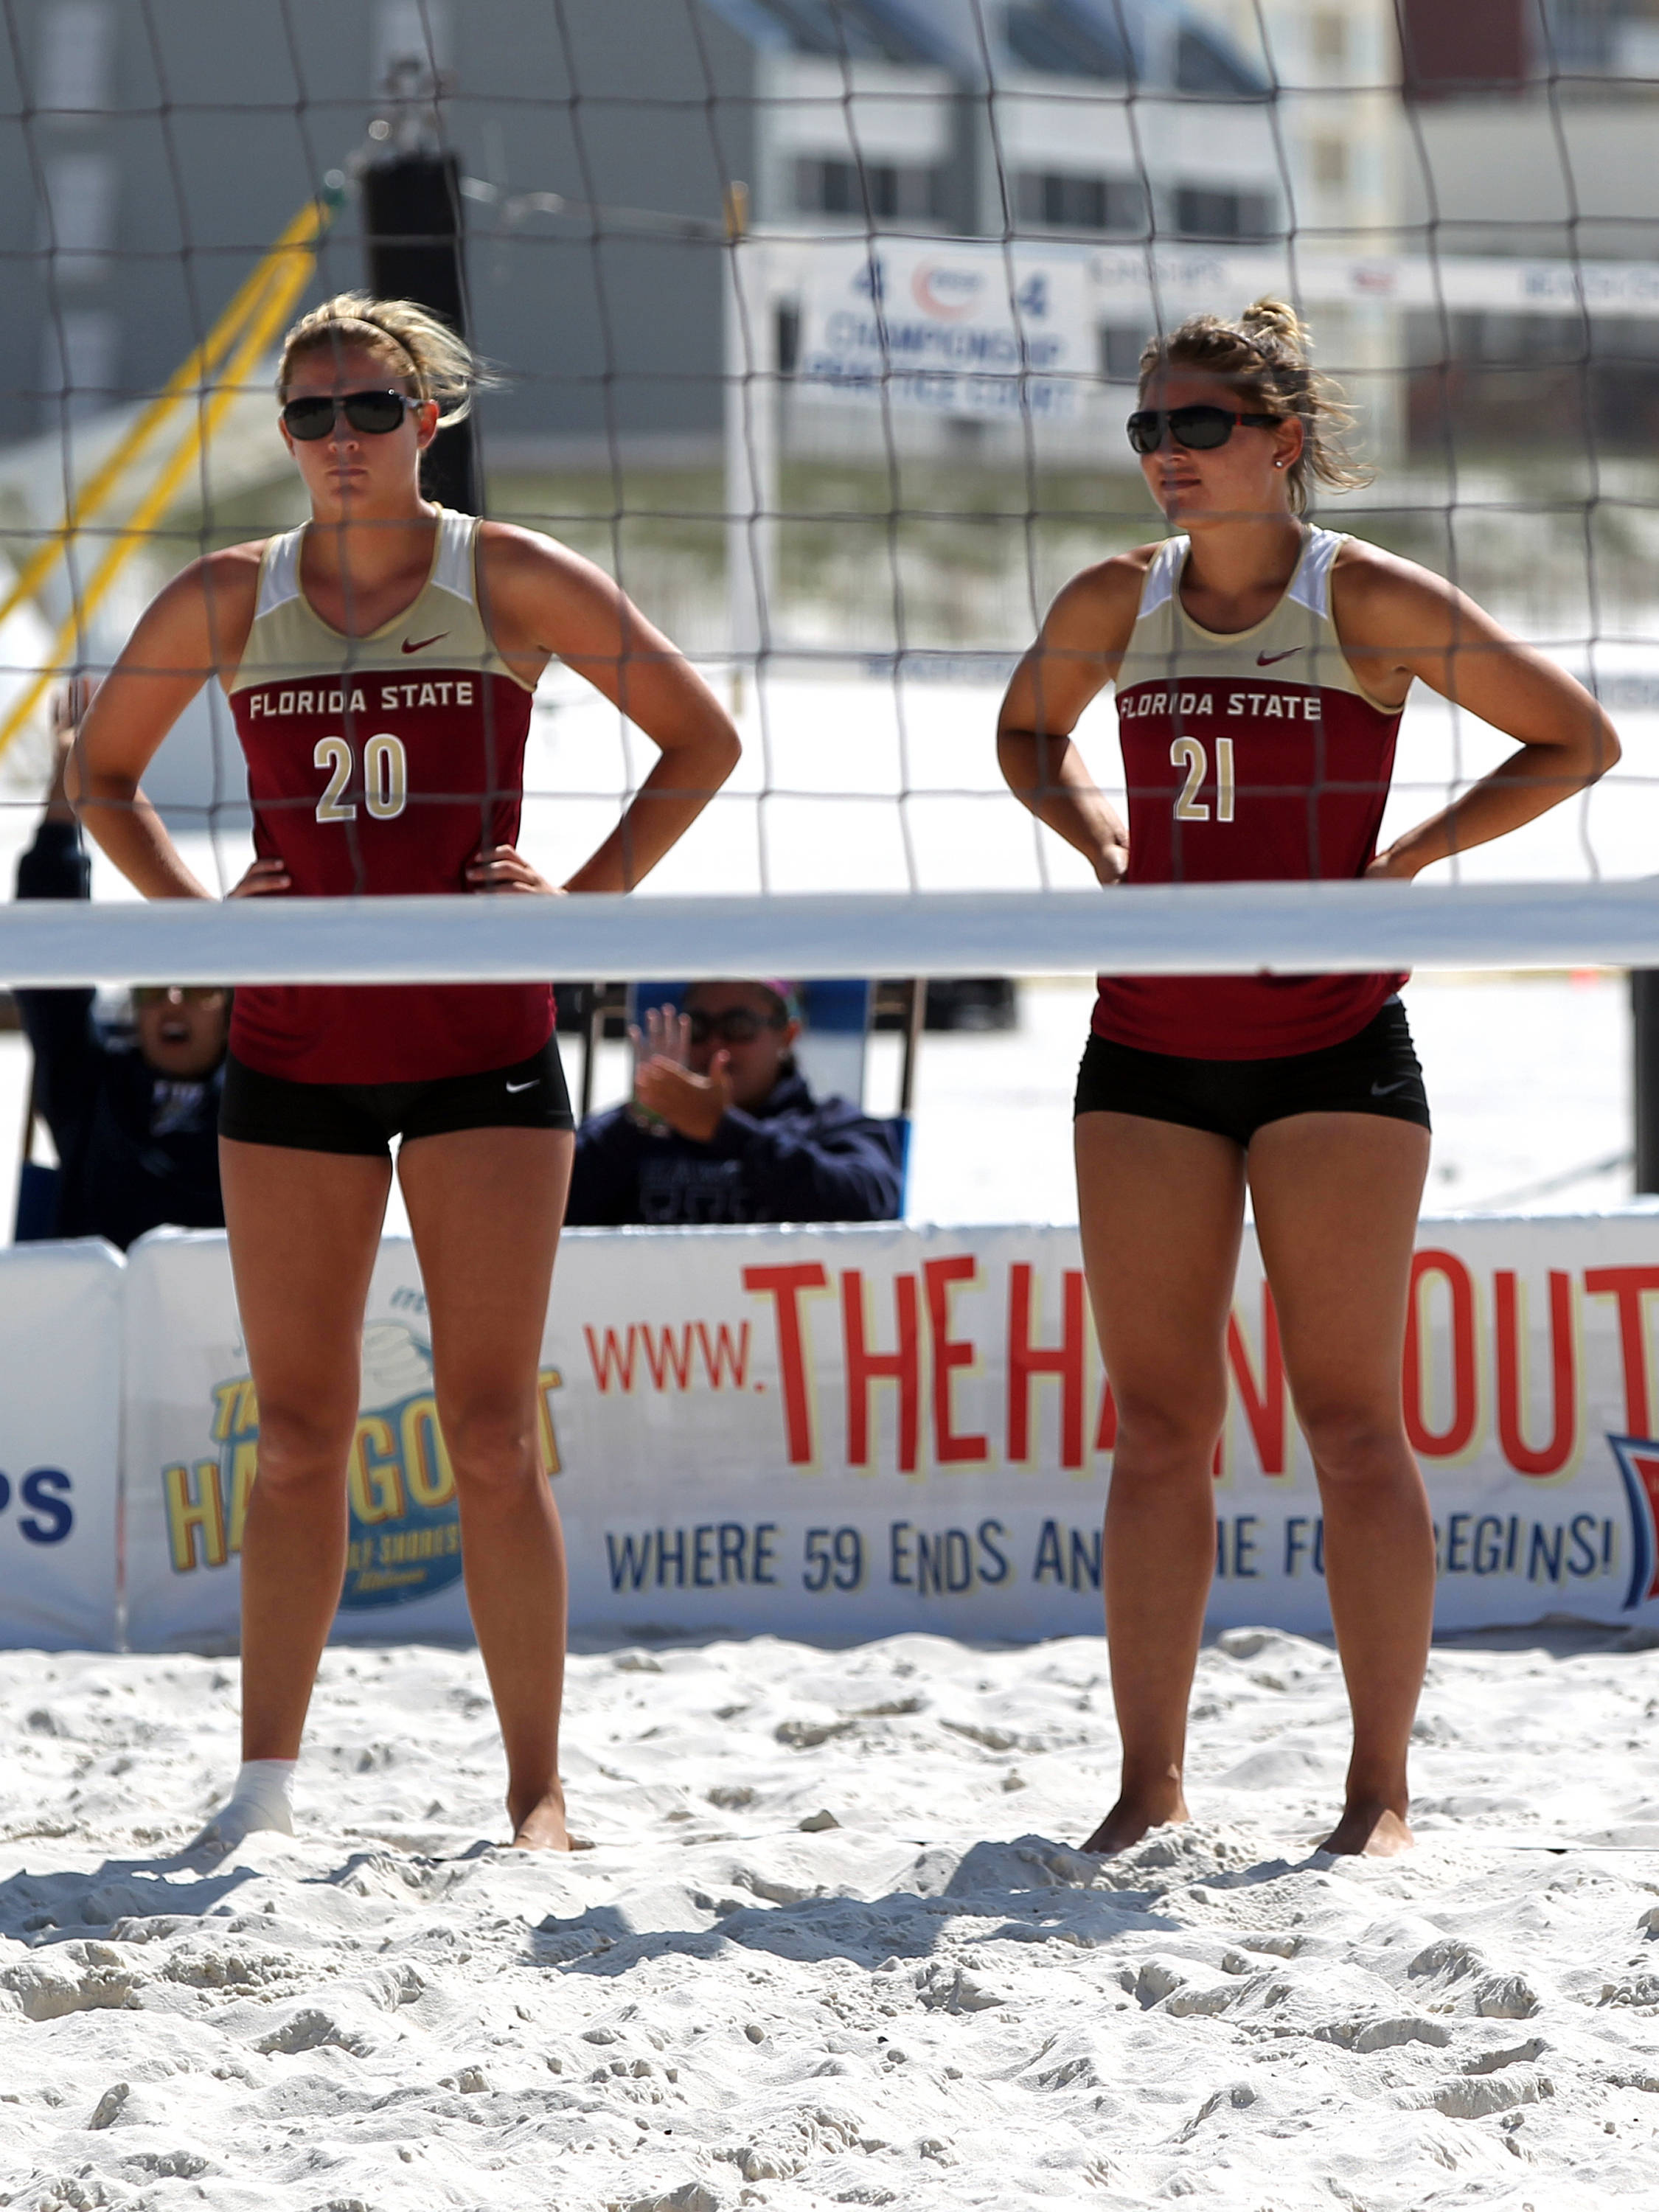 FSU's newest All-Americans, Sarah Wickstrom (20) and Jace Pardon (21), AVCA Collegiate Sand Volleyball National  Championships - Pairs,  Gulf Shores, Alabama, 05/05/13 . (Photo by Steve Musco)